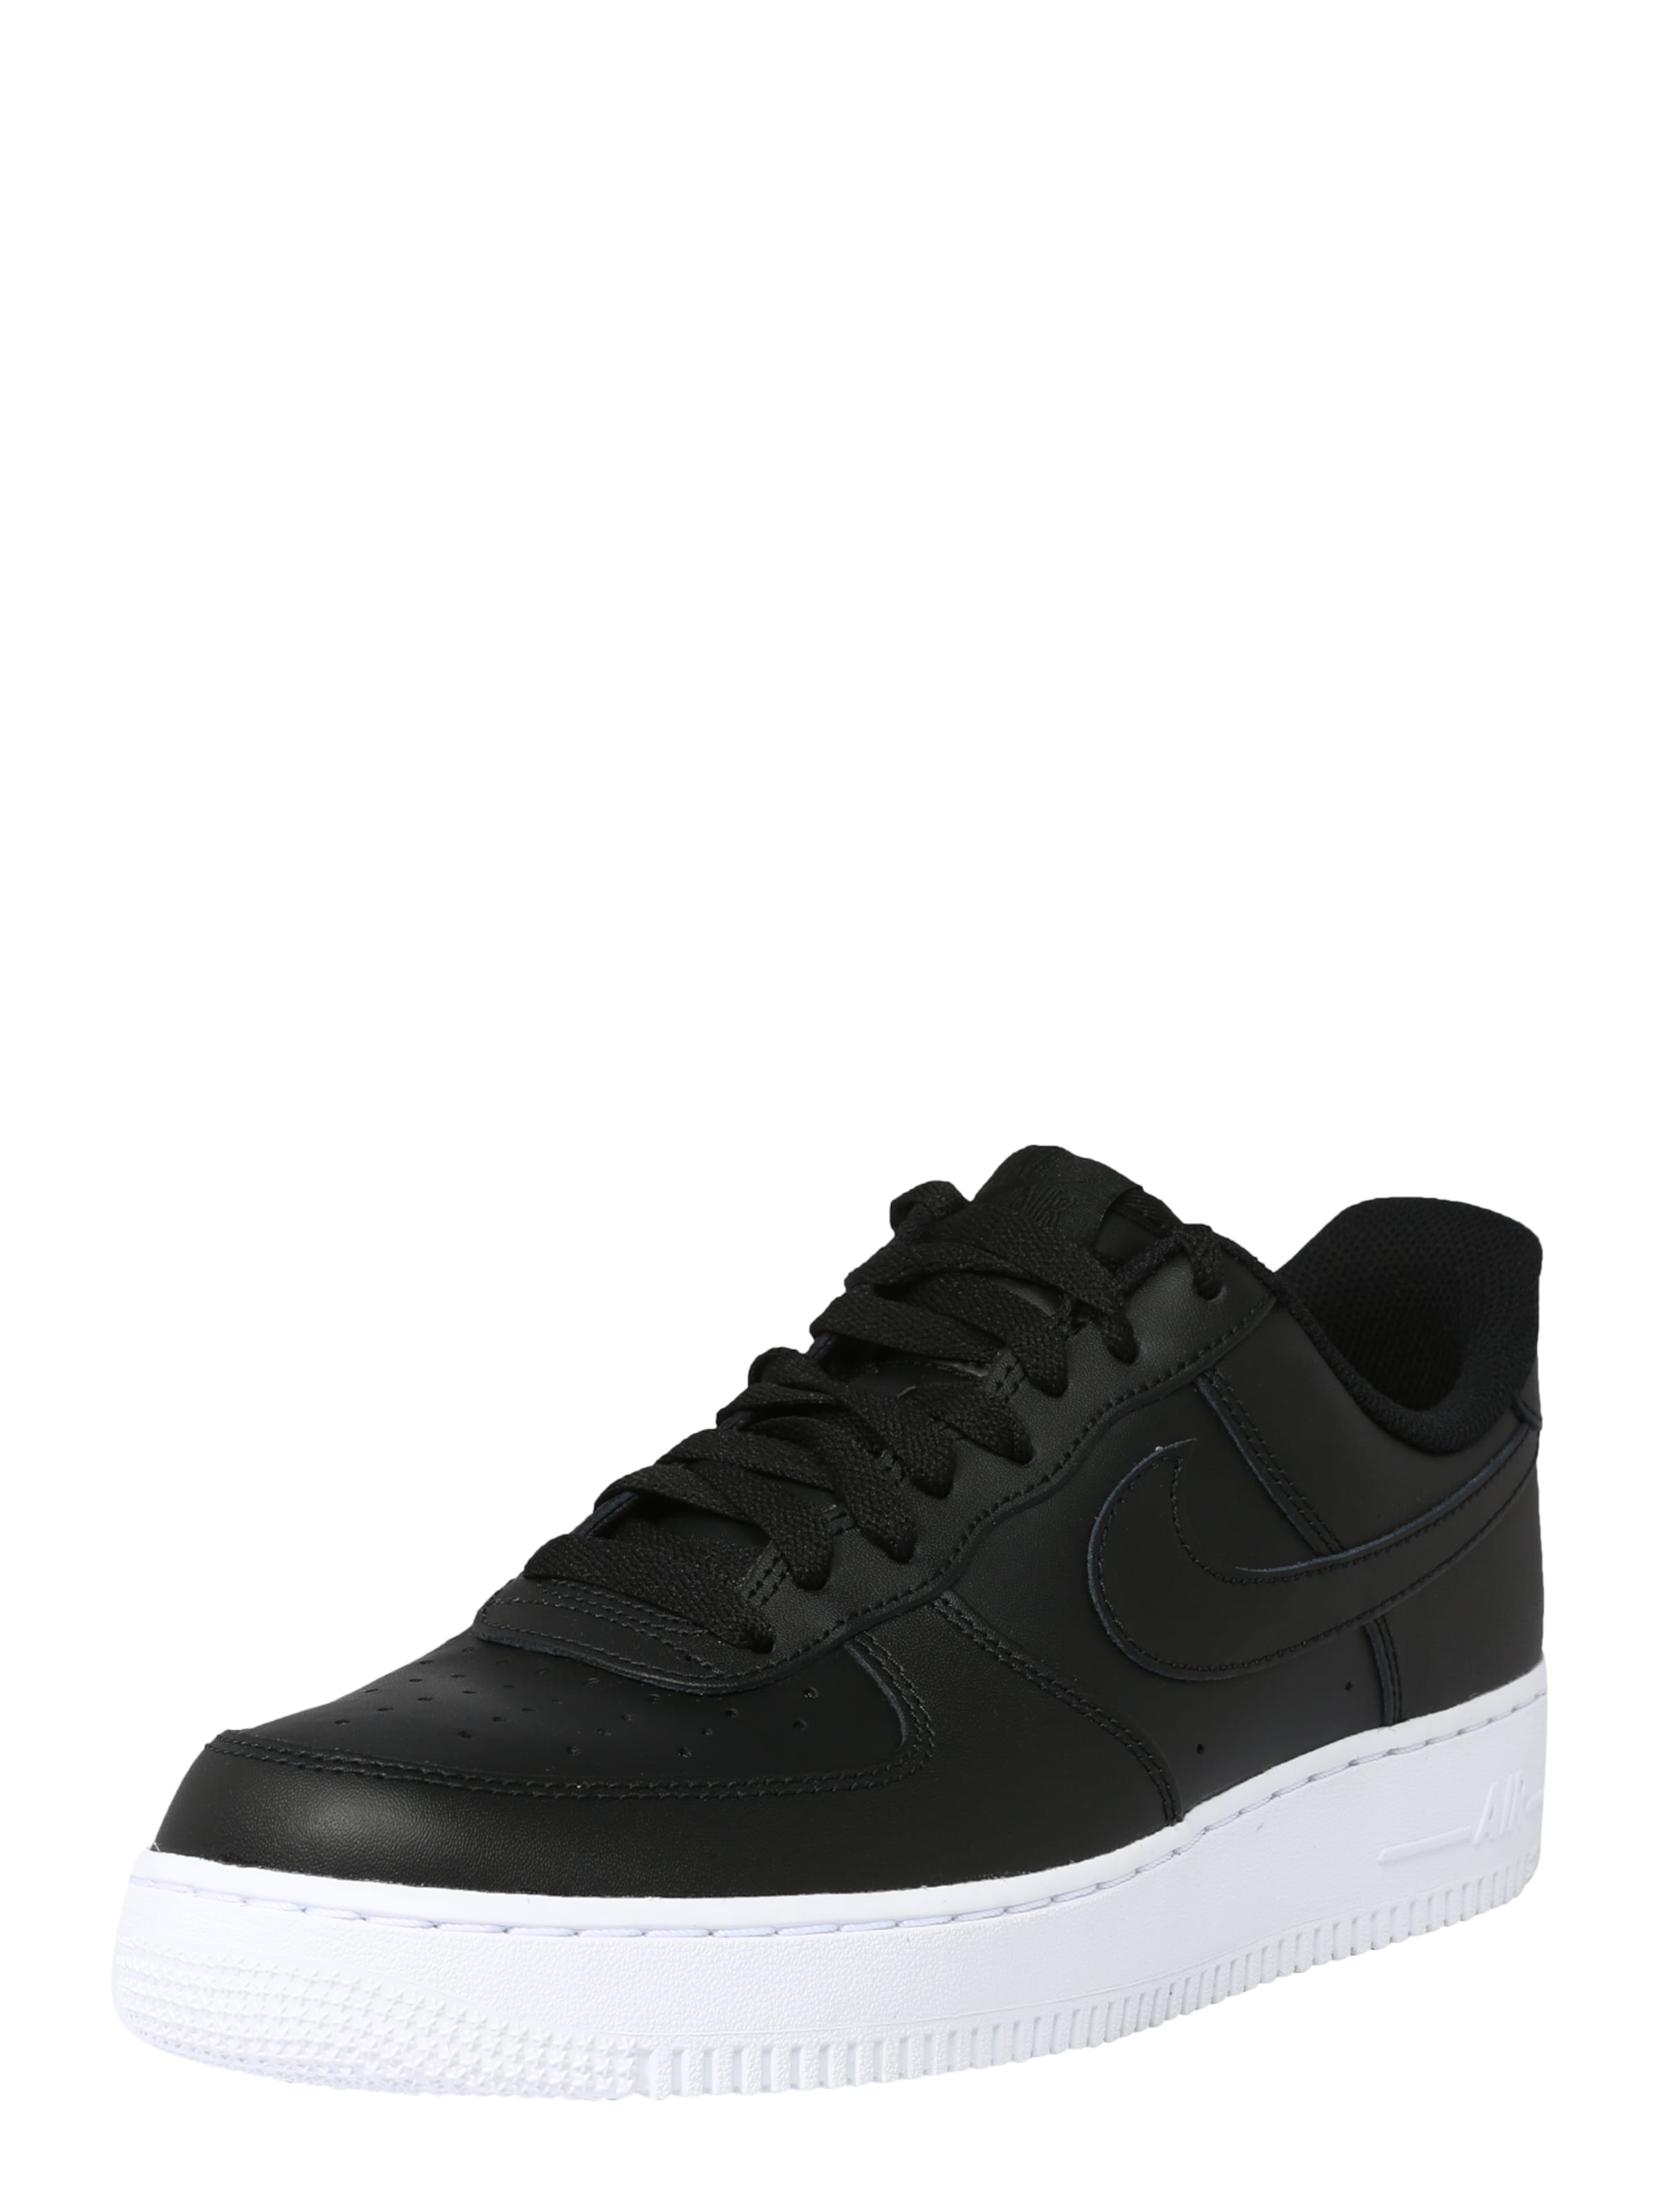 Sportswear Force Nike 'air SchwarzWeiß In Sneaker 1' D2YIeWHE9